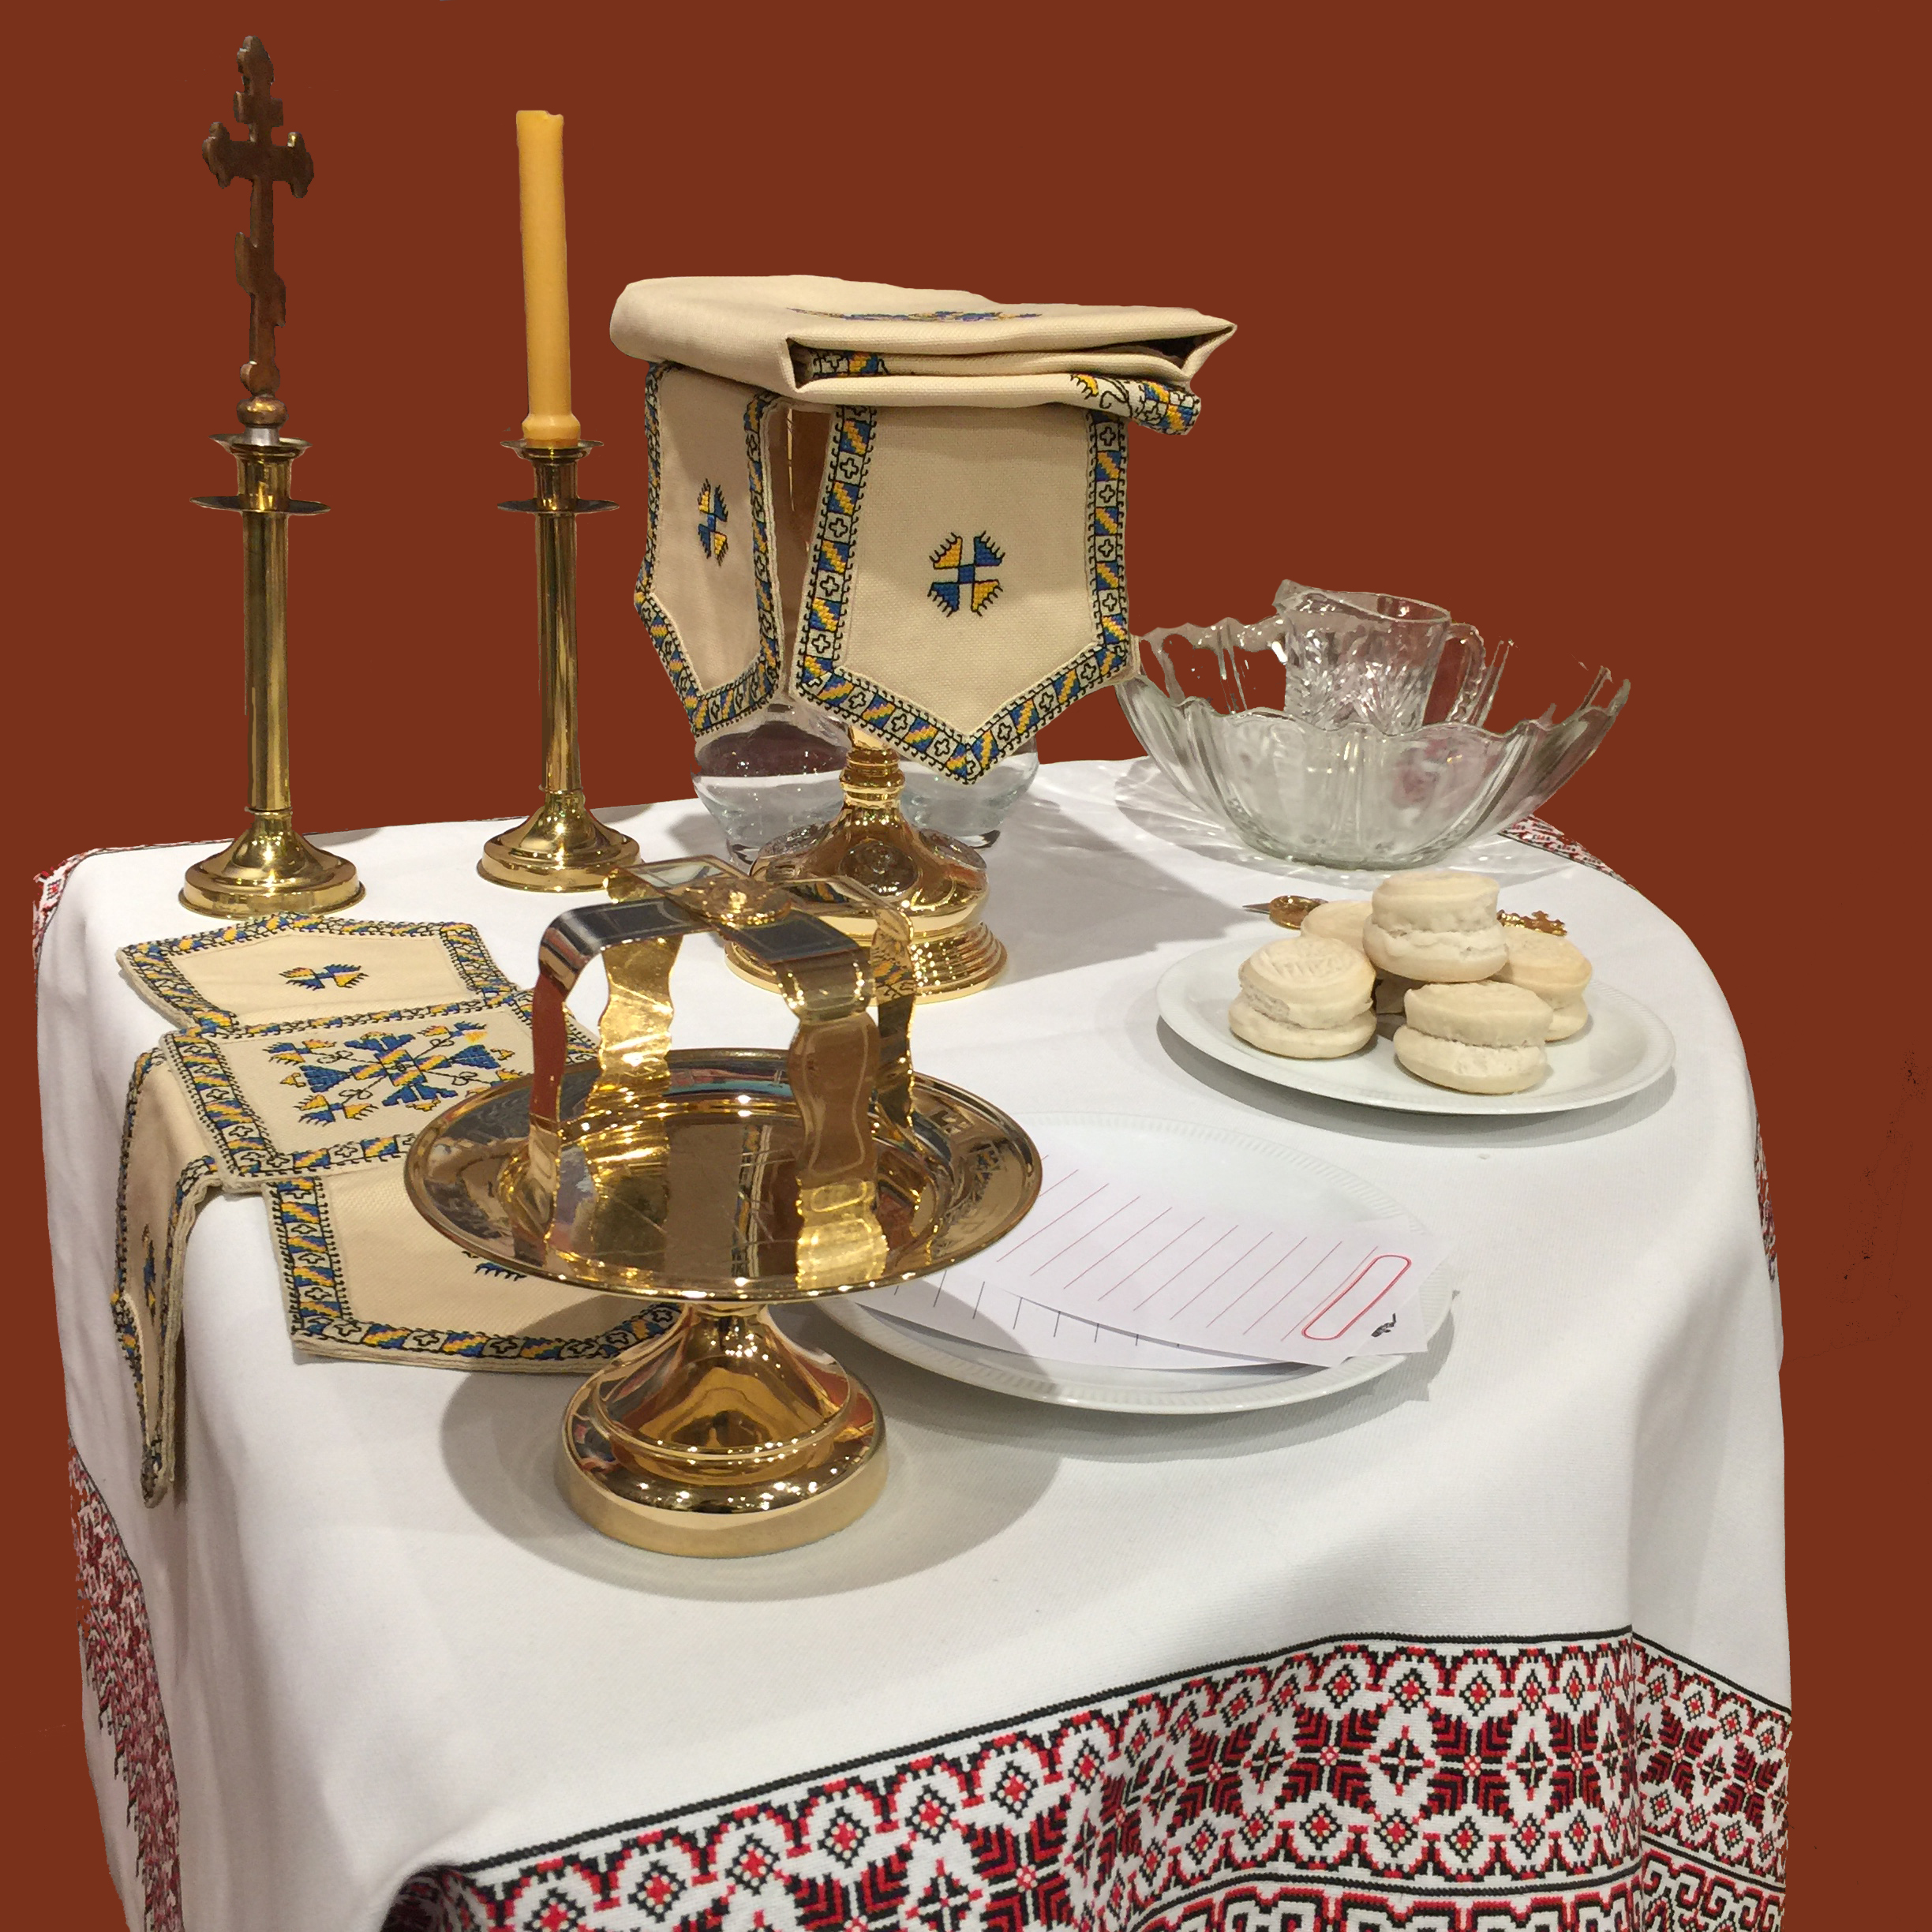 Table of Oblation Жертівник - The Table of Oblation stands on the left side of the altar and is where the bread and wine are prepared for communion during the Divine Liturgy.